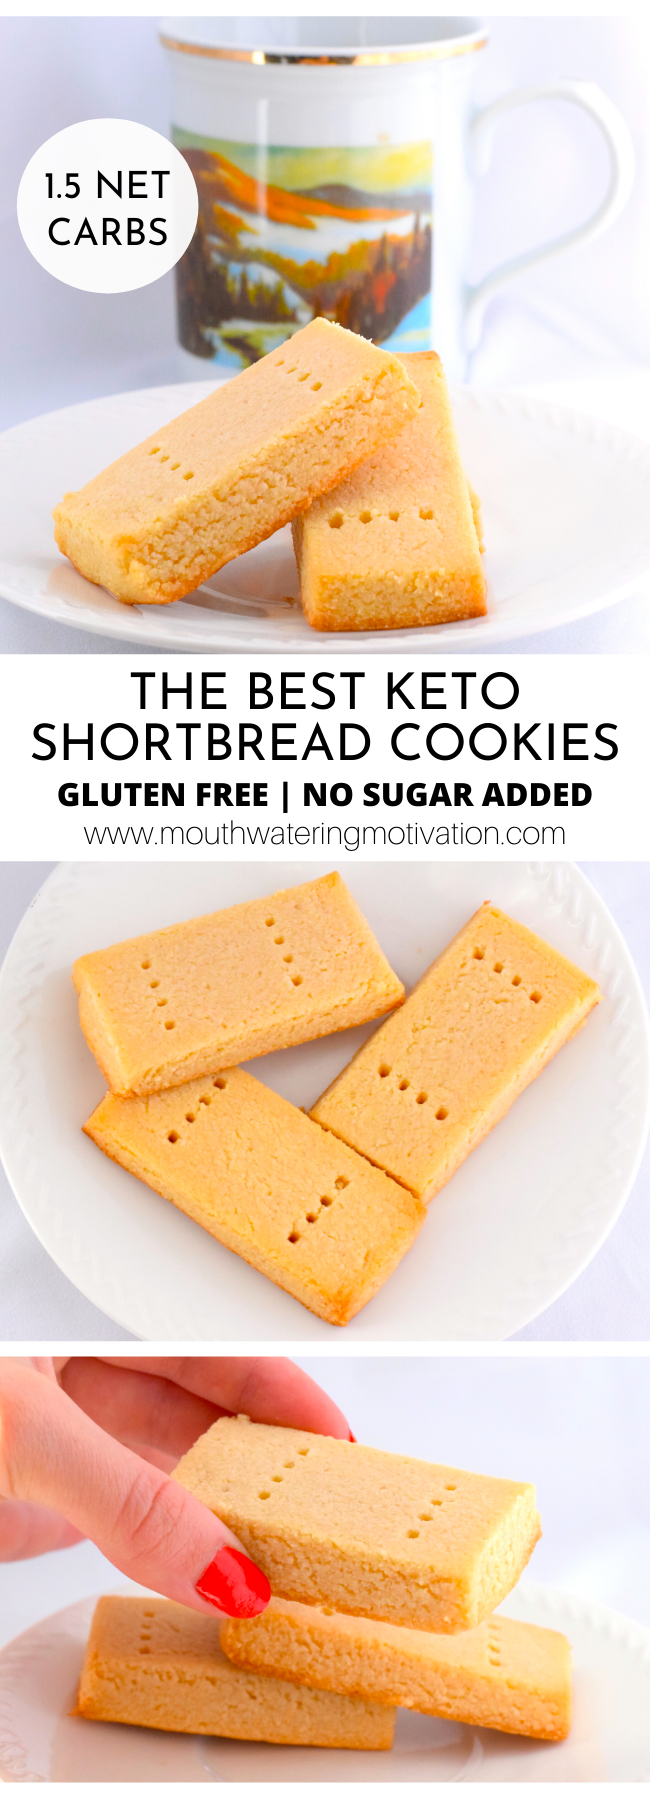 THE BEST KETO SHORTBREAD